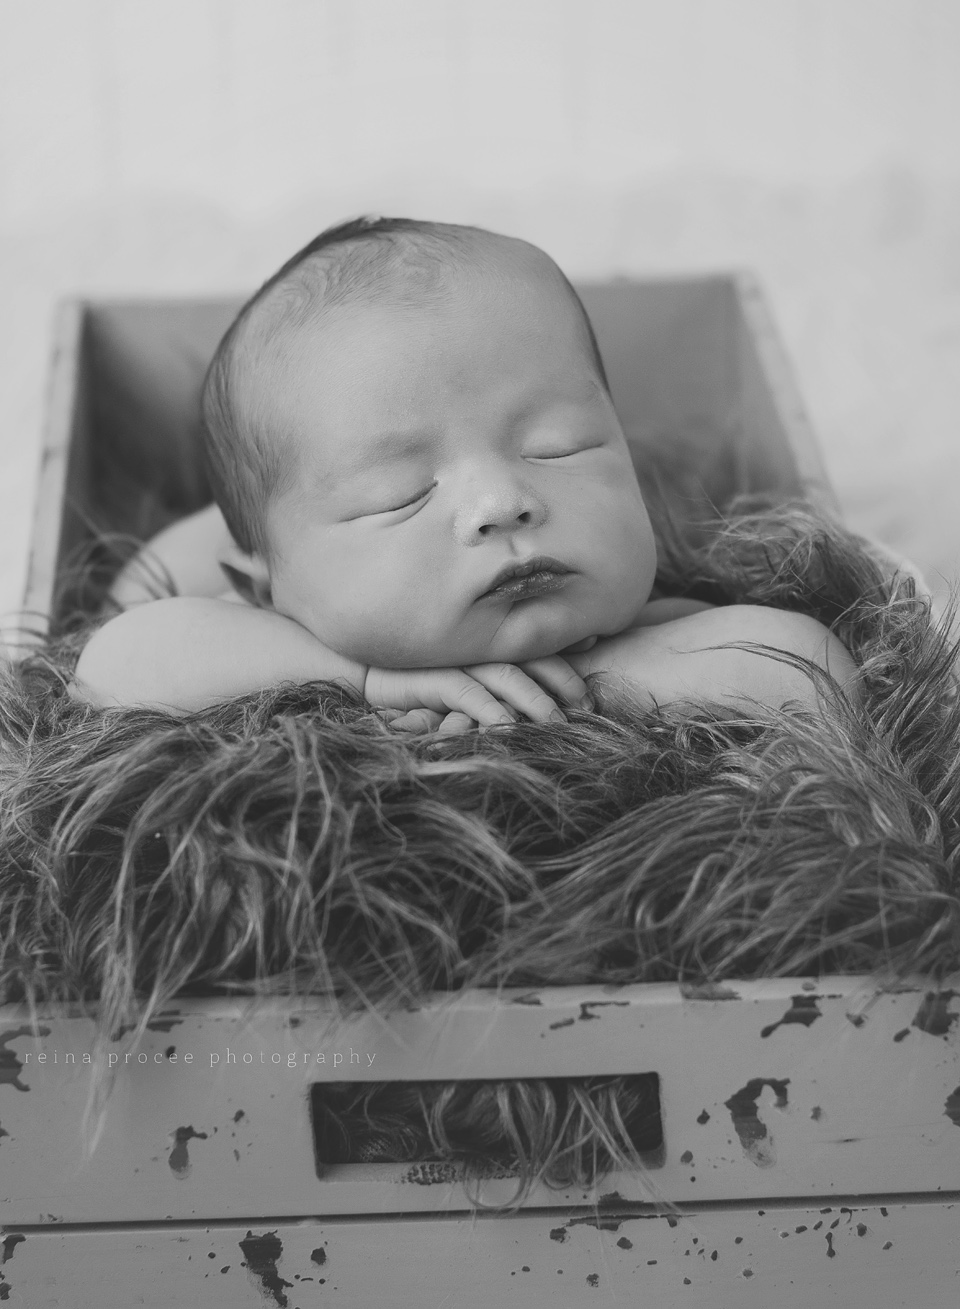 baby boy sleeping in a box blank and white